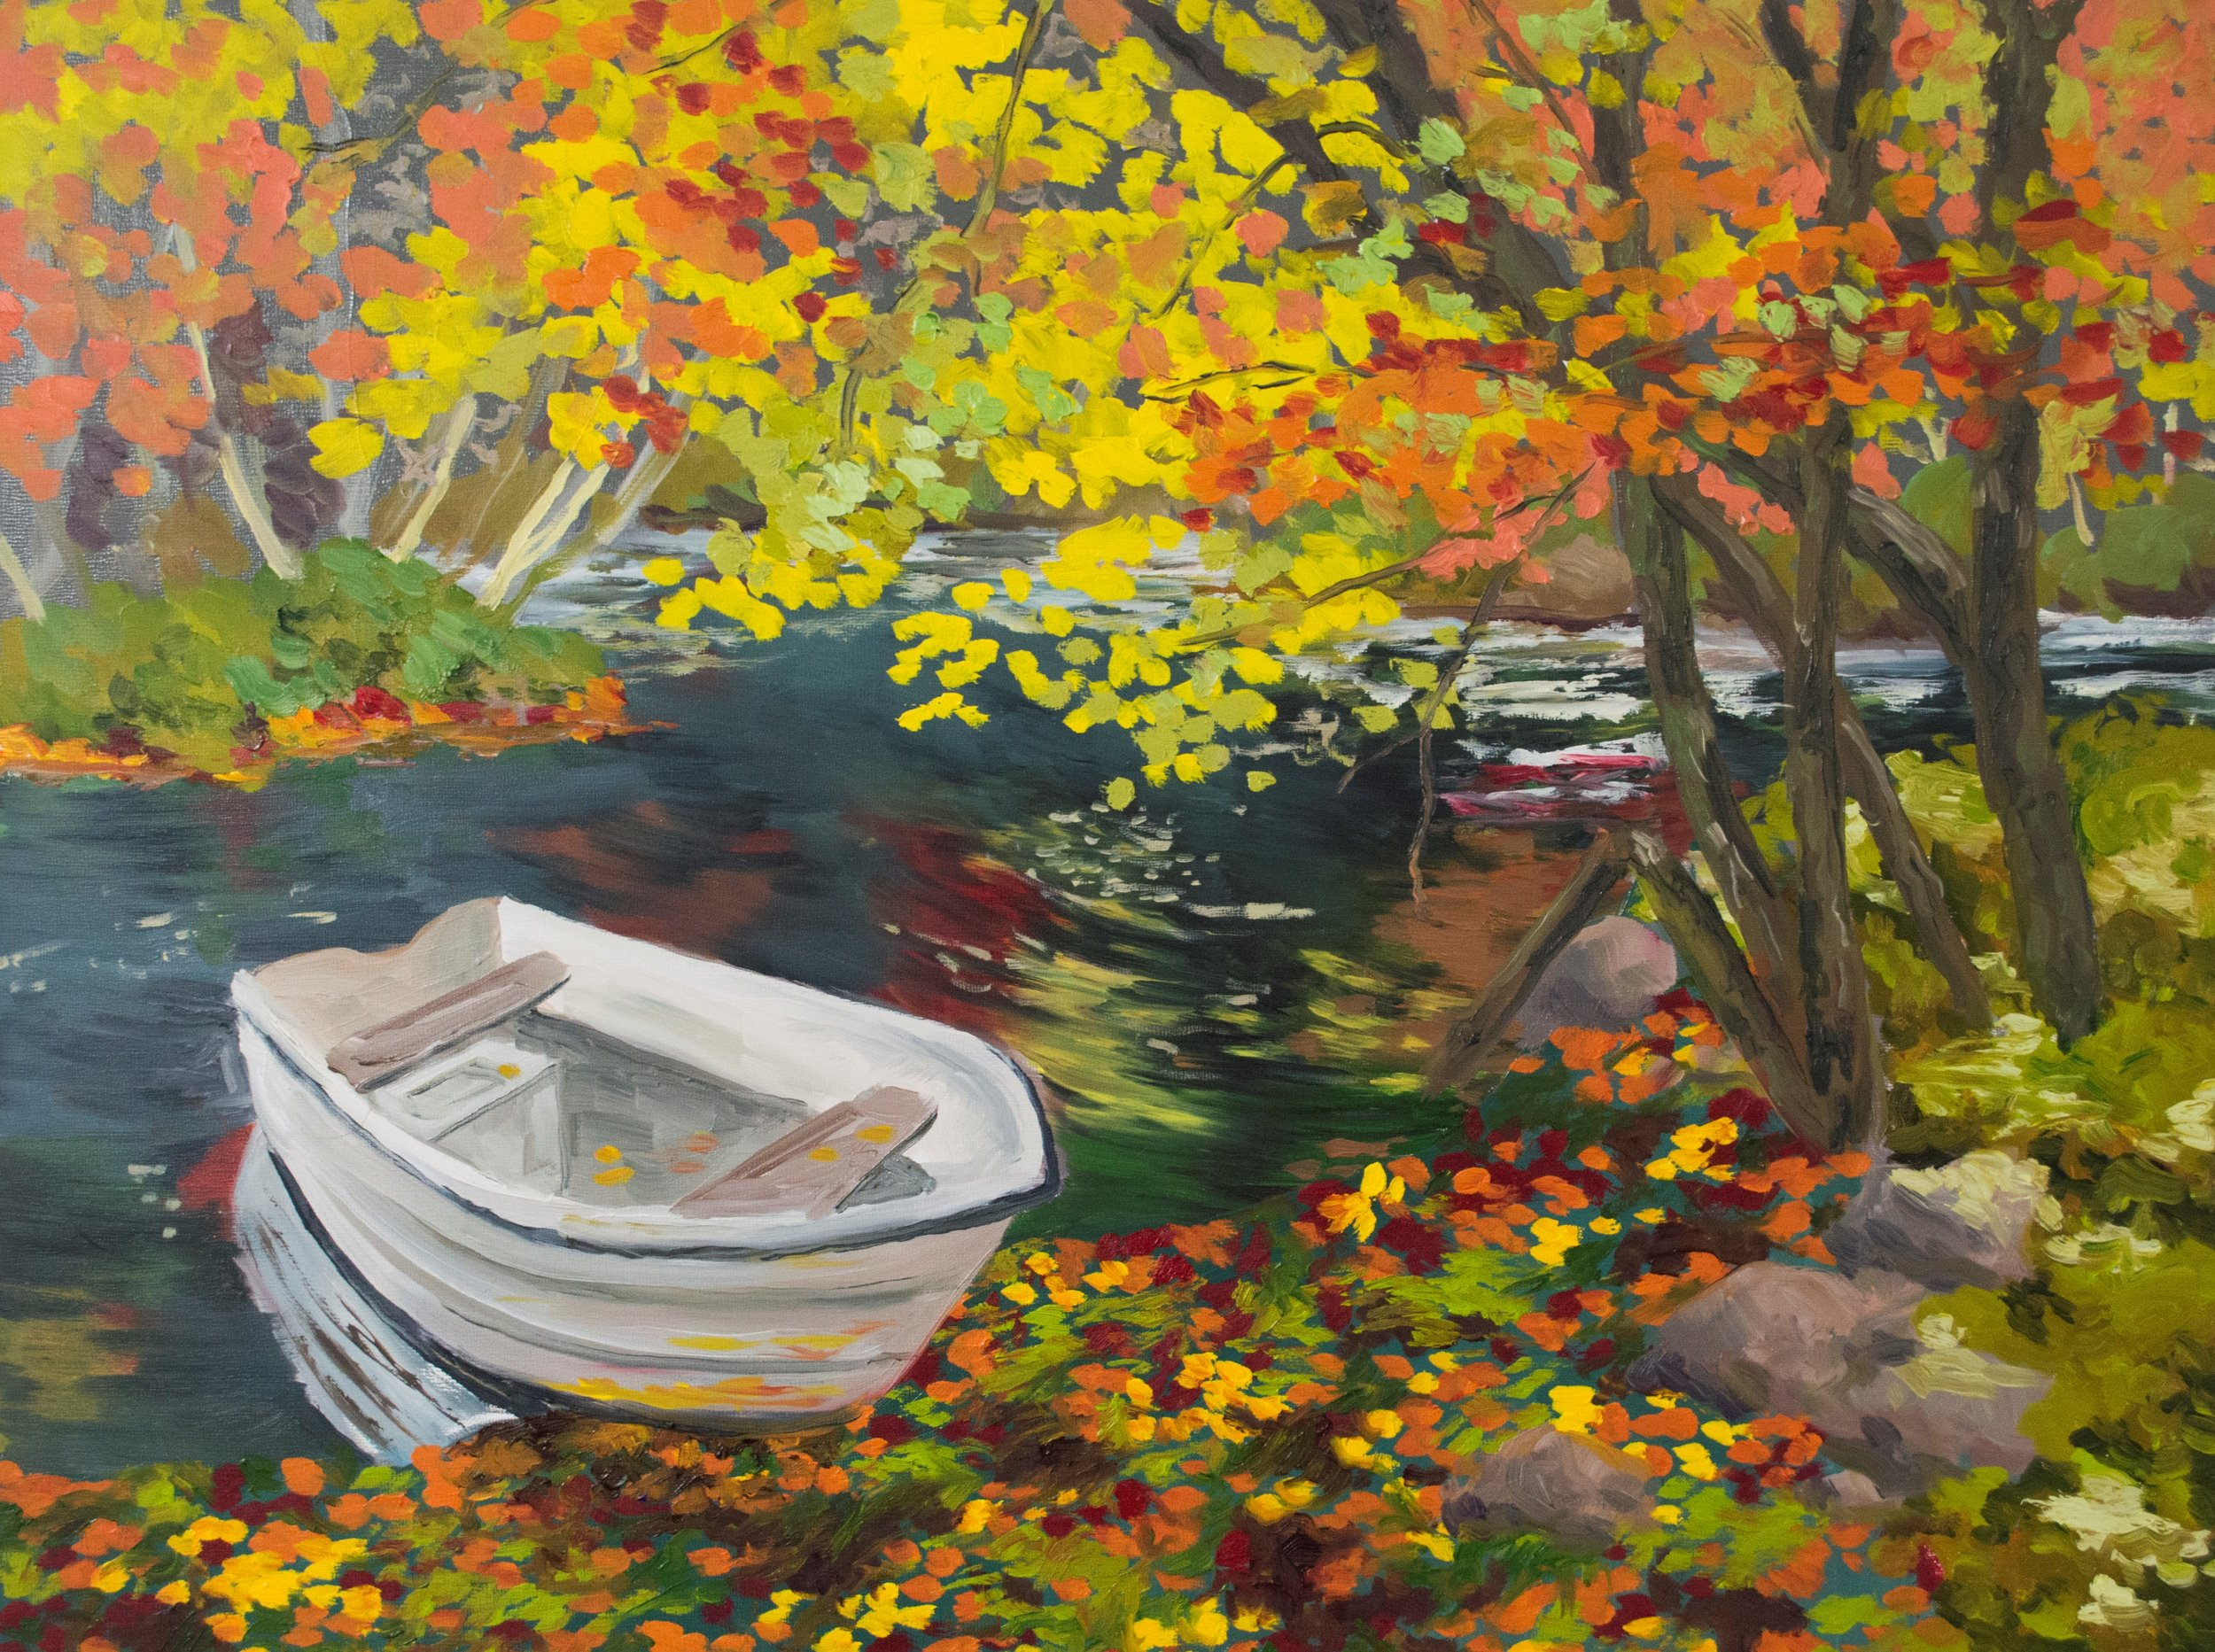 Autumn Riverbank - NFS SOLD   2018  24 in x 18 in x 1 1/2 in  Oil on Panel